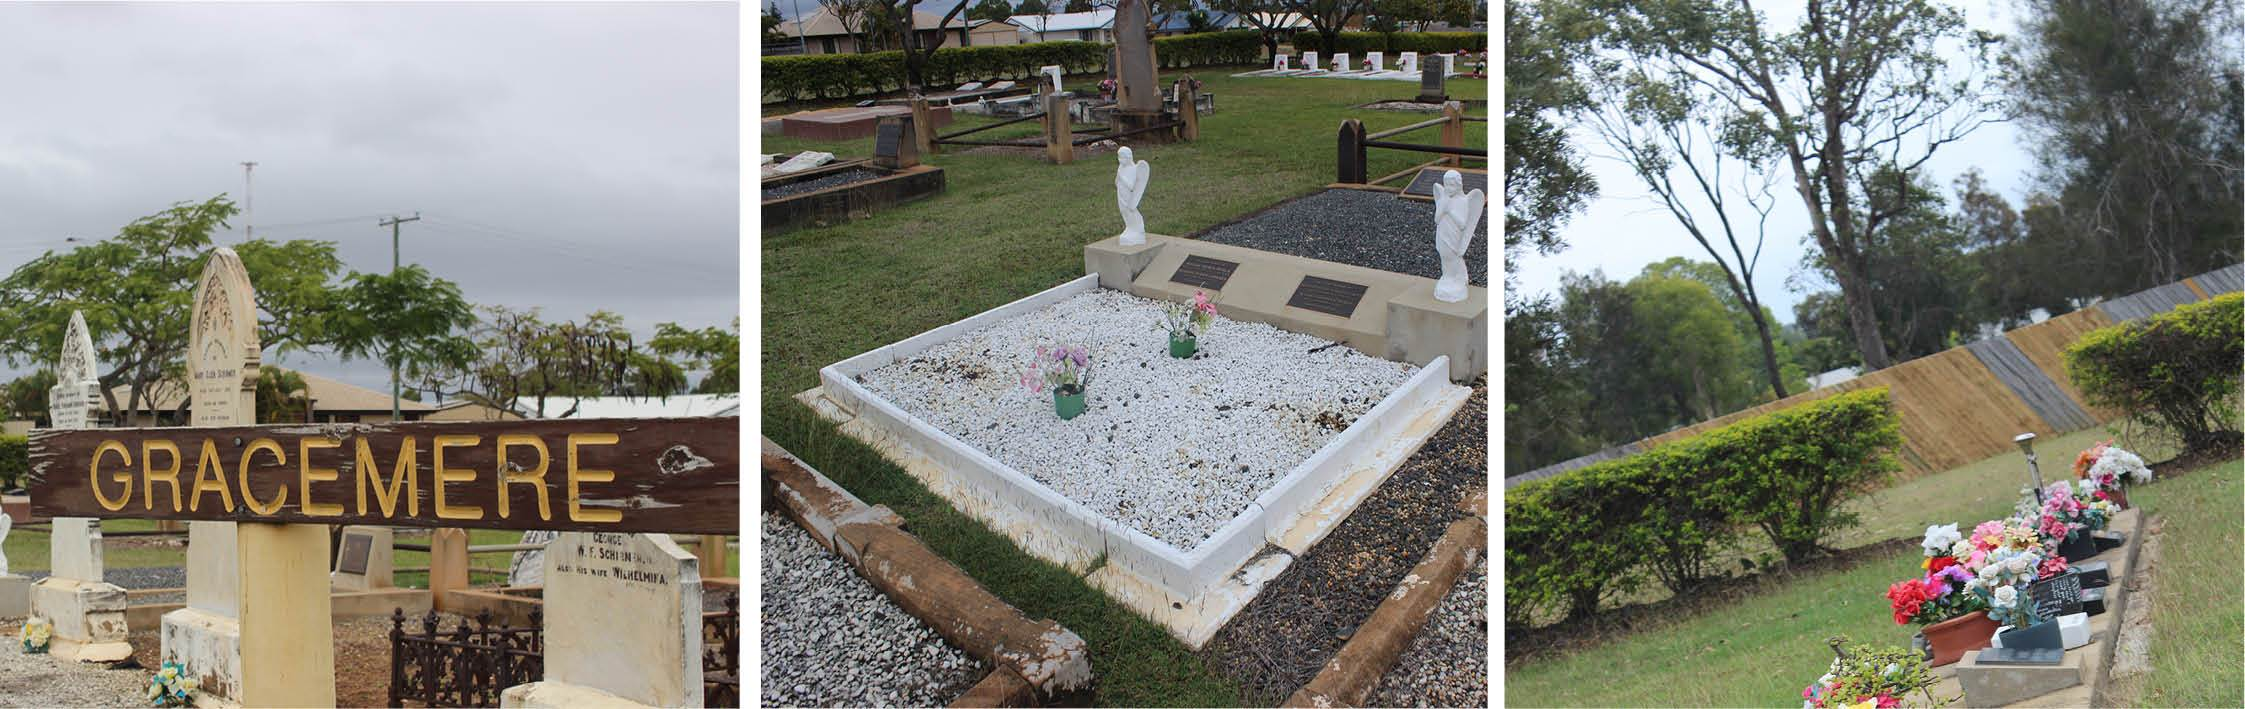 Gracemere Cemetery